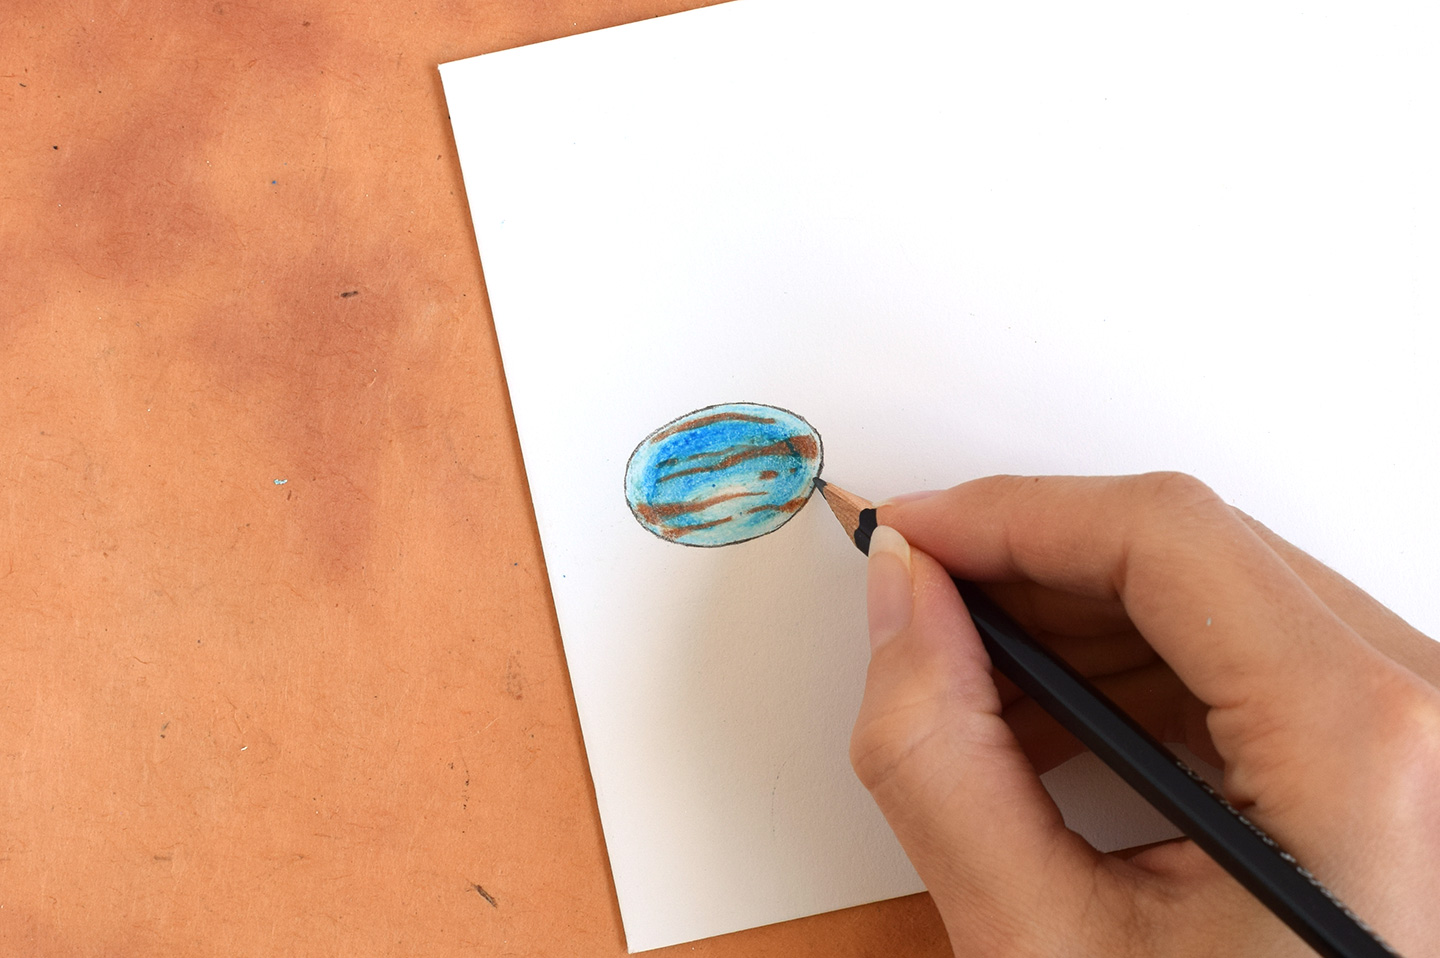 How to Draw Gemstones with Crayons | The Postman's Knock